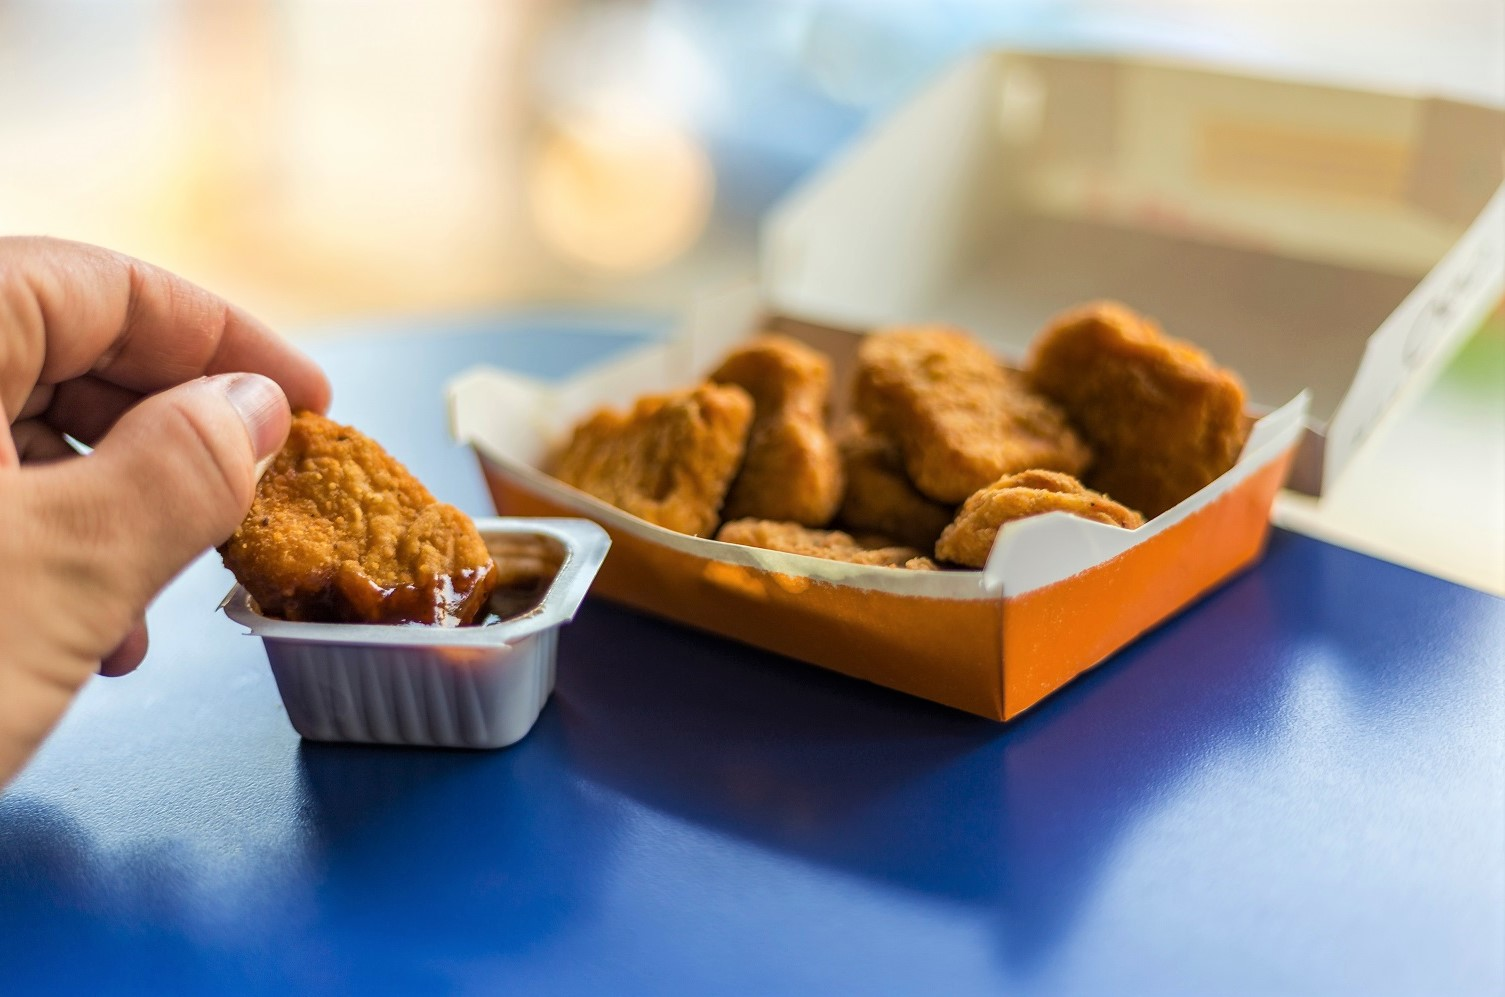 Fast Food Chicken Nuggets Dipped In Sauce